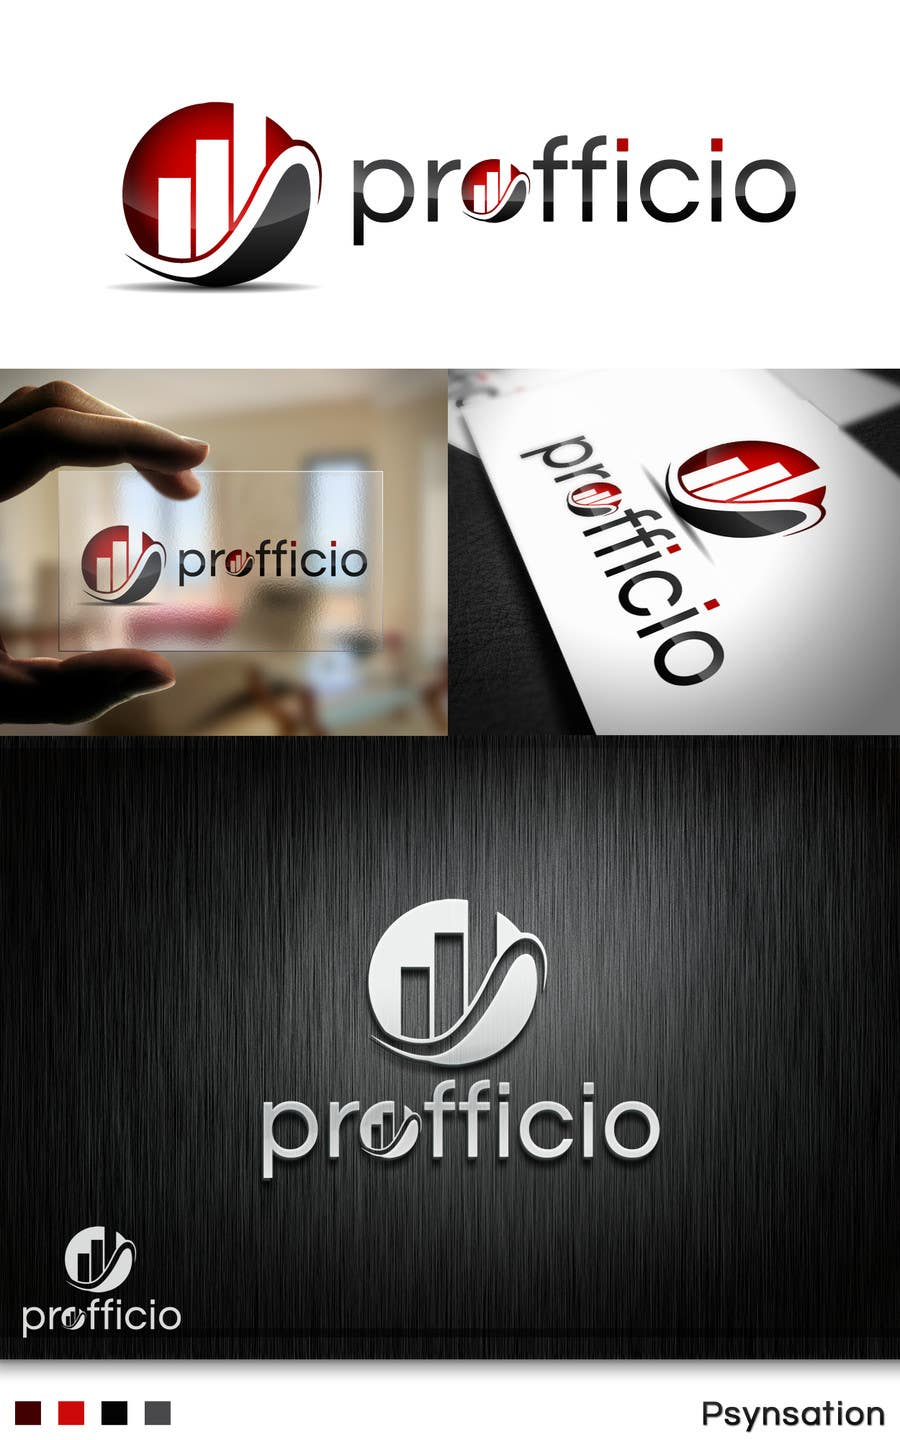 #40 for Design a Logo for Profficio by Psynsation